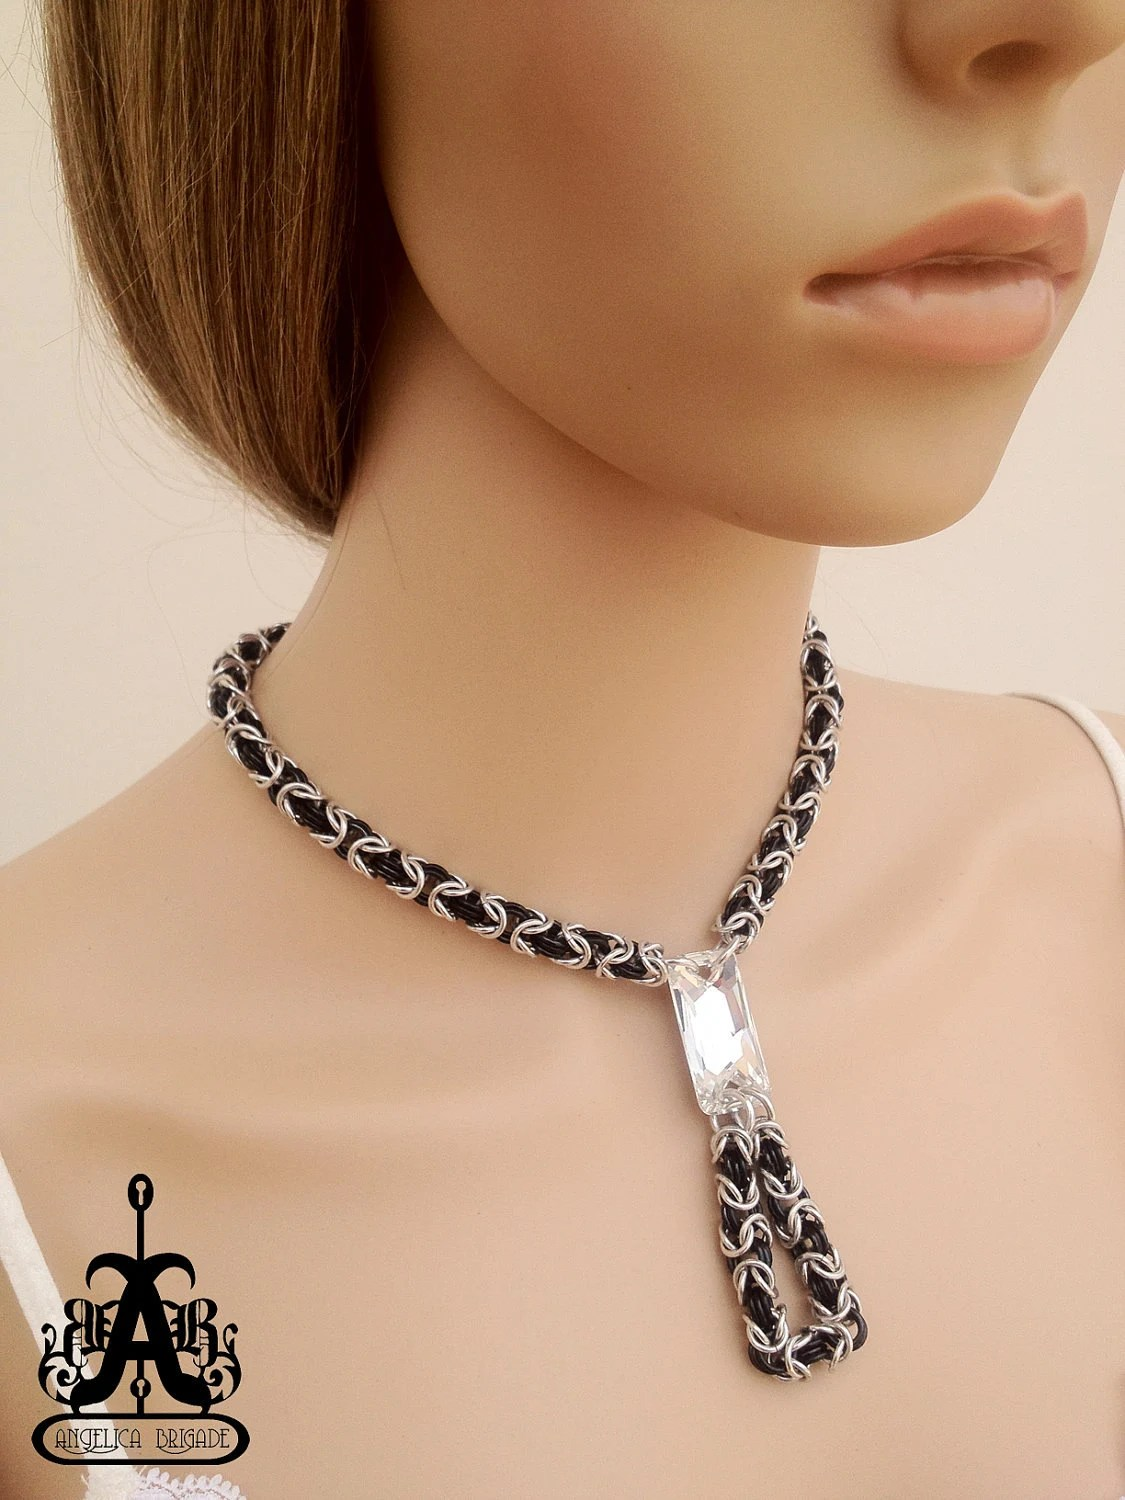 Contemporary Chain Maille Necklace with a Large Swarovski Crystal Centerpiece, US$60 Made to order. http://www.etsy.com/listing/89827486/contemporary-chain-maille-necklace-with An original design by joyz*k of Angelica Brigade http://www.etsy.com/listing/89827486/